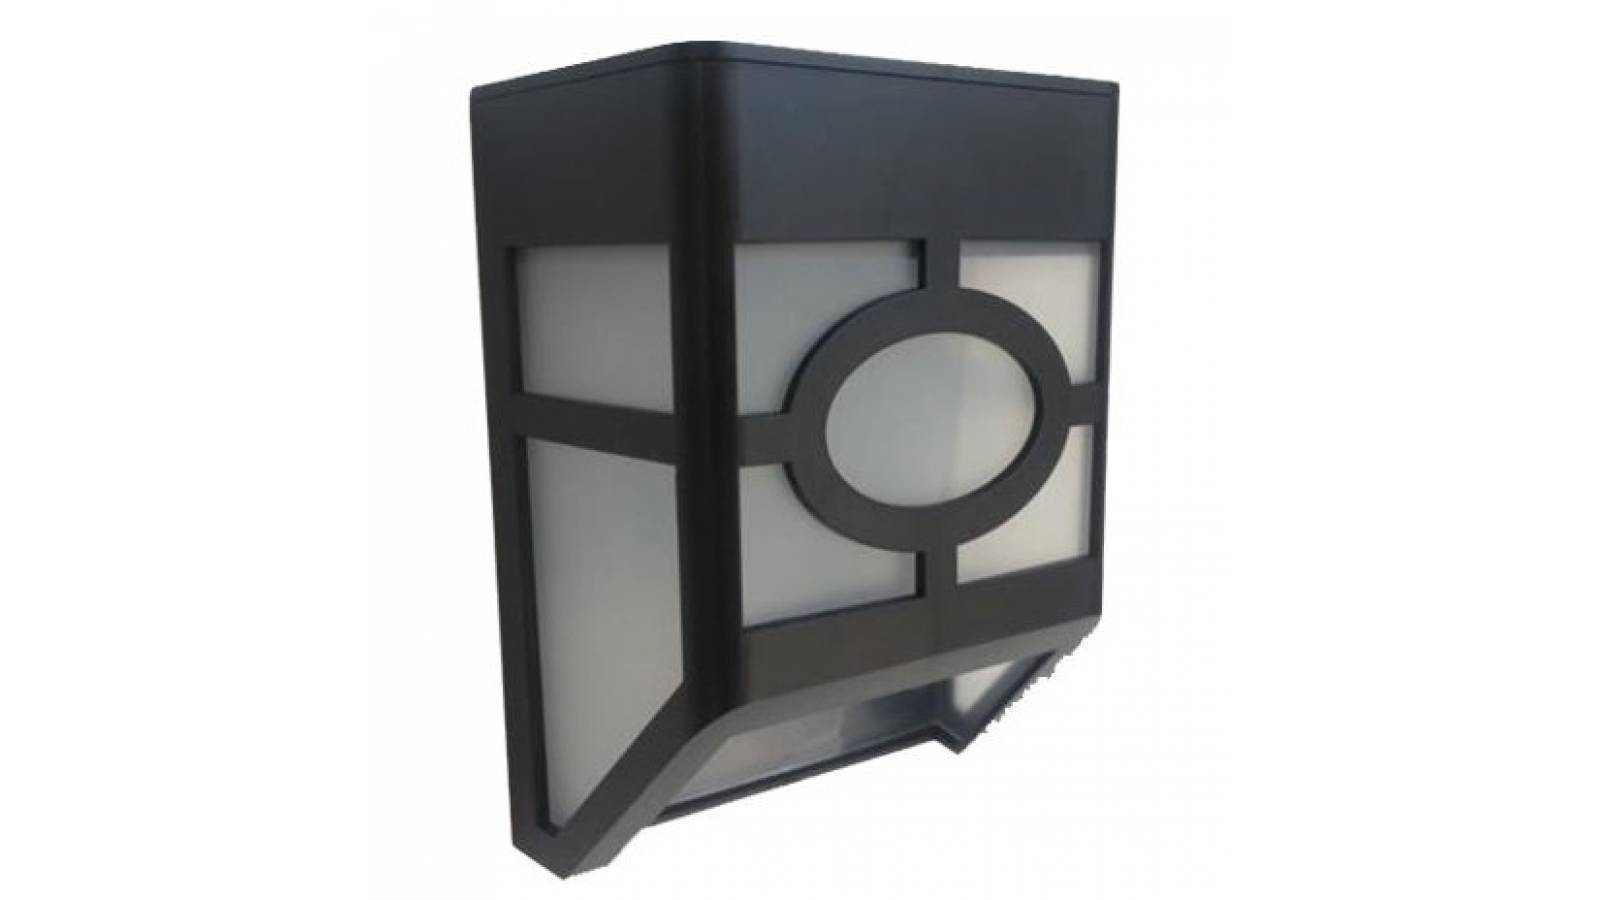 Lampara solar de pared - luz LED baja